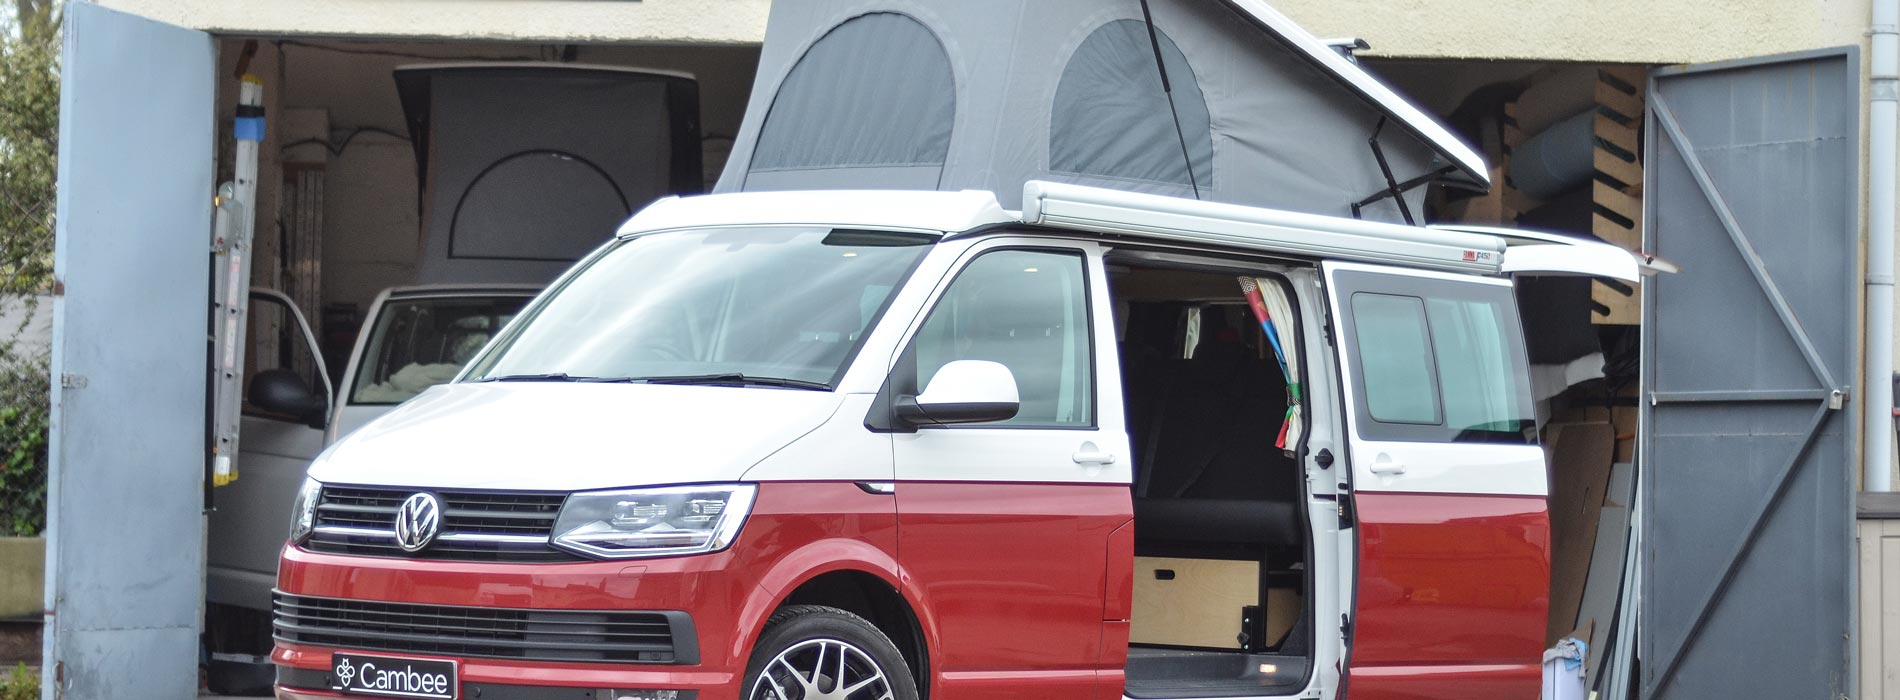 two tone red and white VW conversion campavan with doors open and pop top